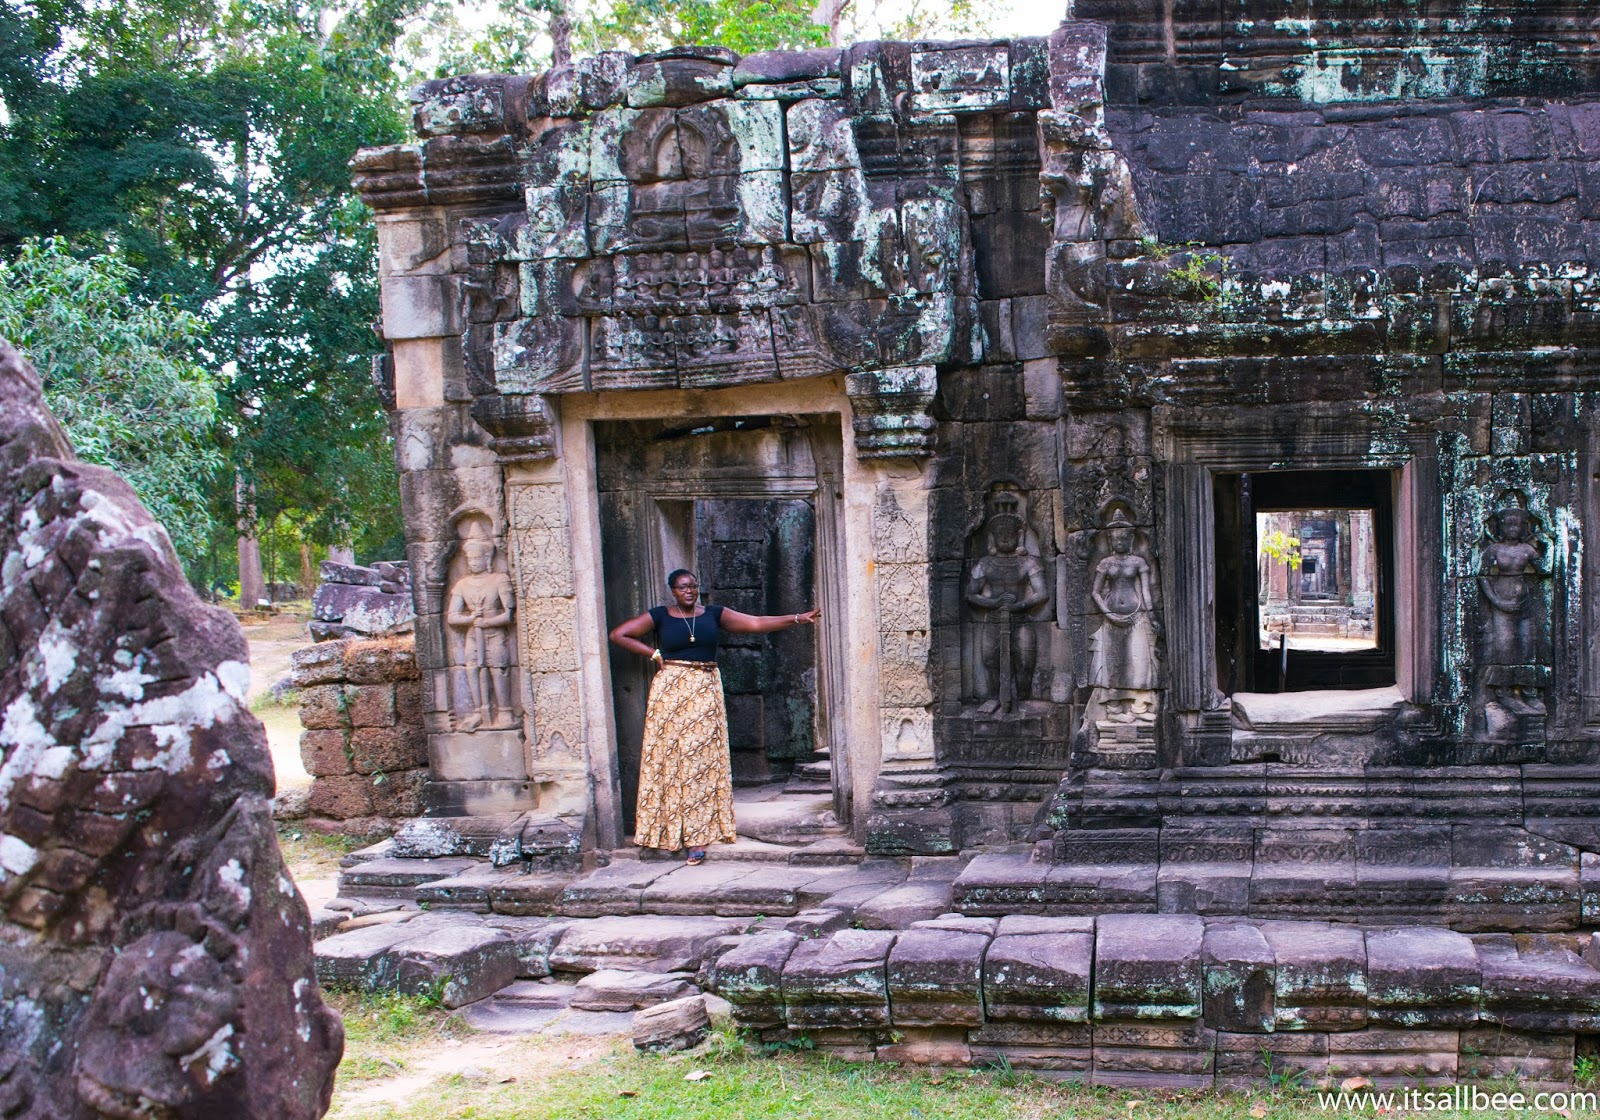 Exploring Cambodia's Banteay Kdei Temple In Siem Reap - A Citadel of Chambers